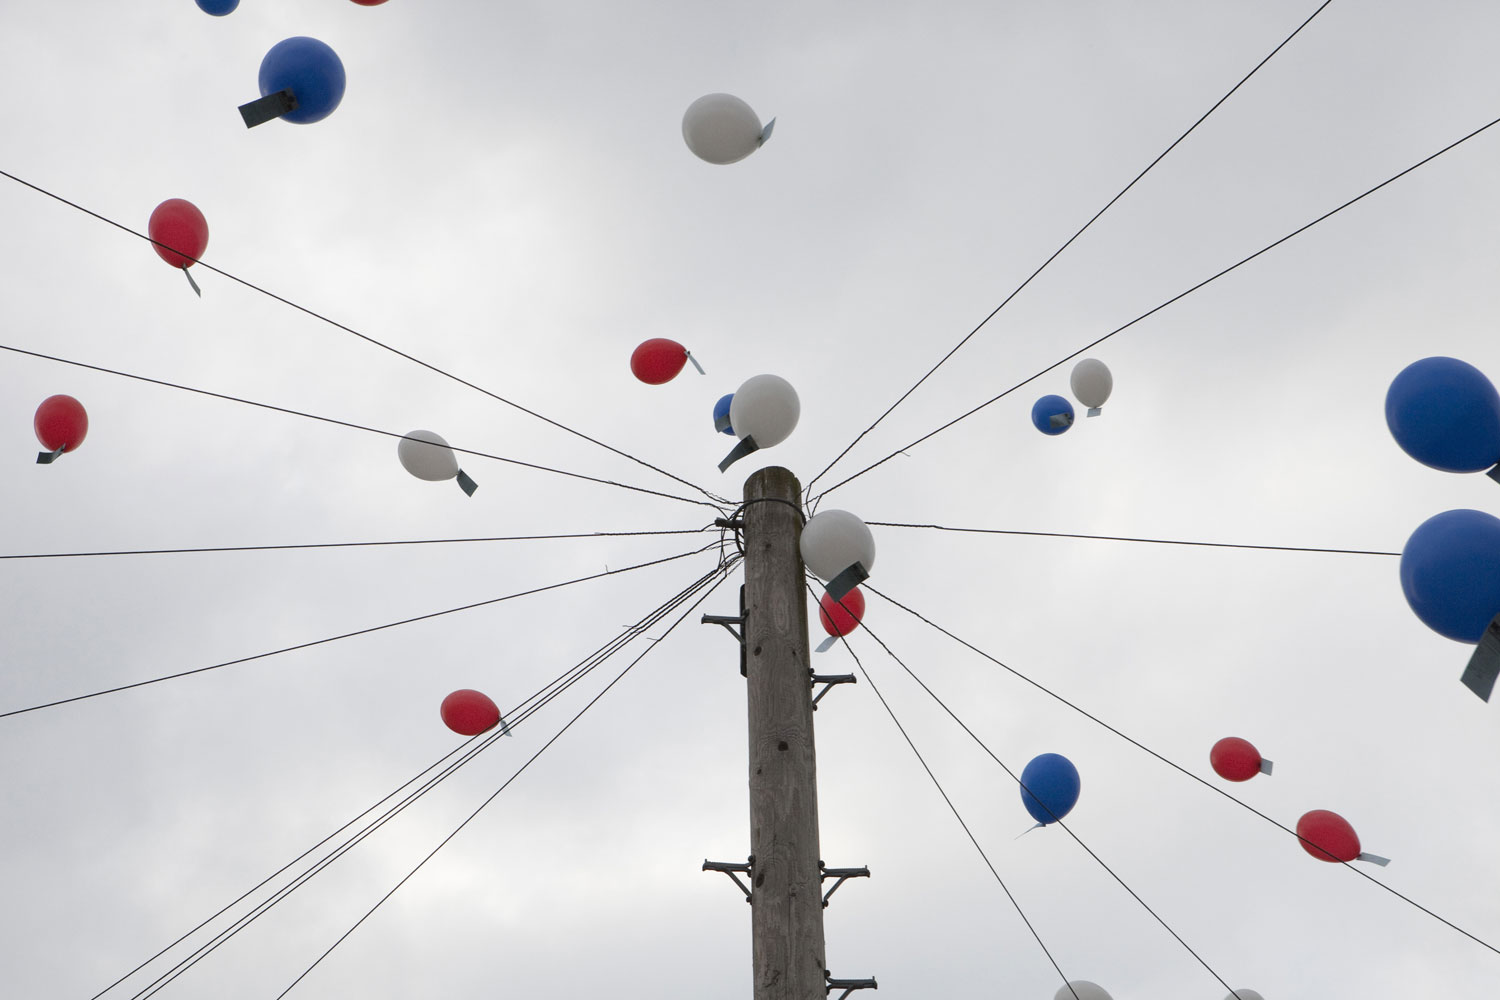 Red, white and blue balloons are raise into the sky at a Hobart Drive Street Party in Walsall, England.